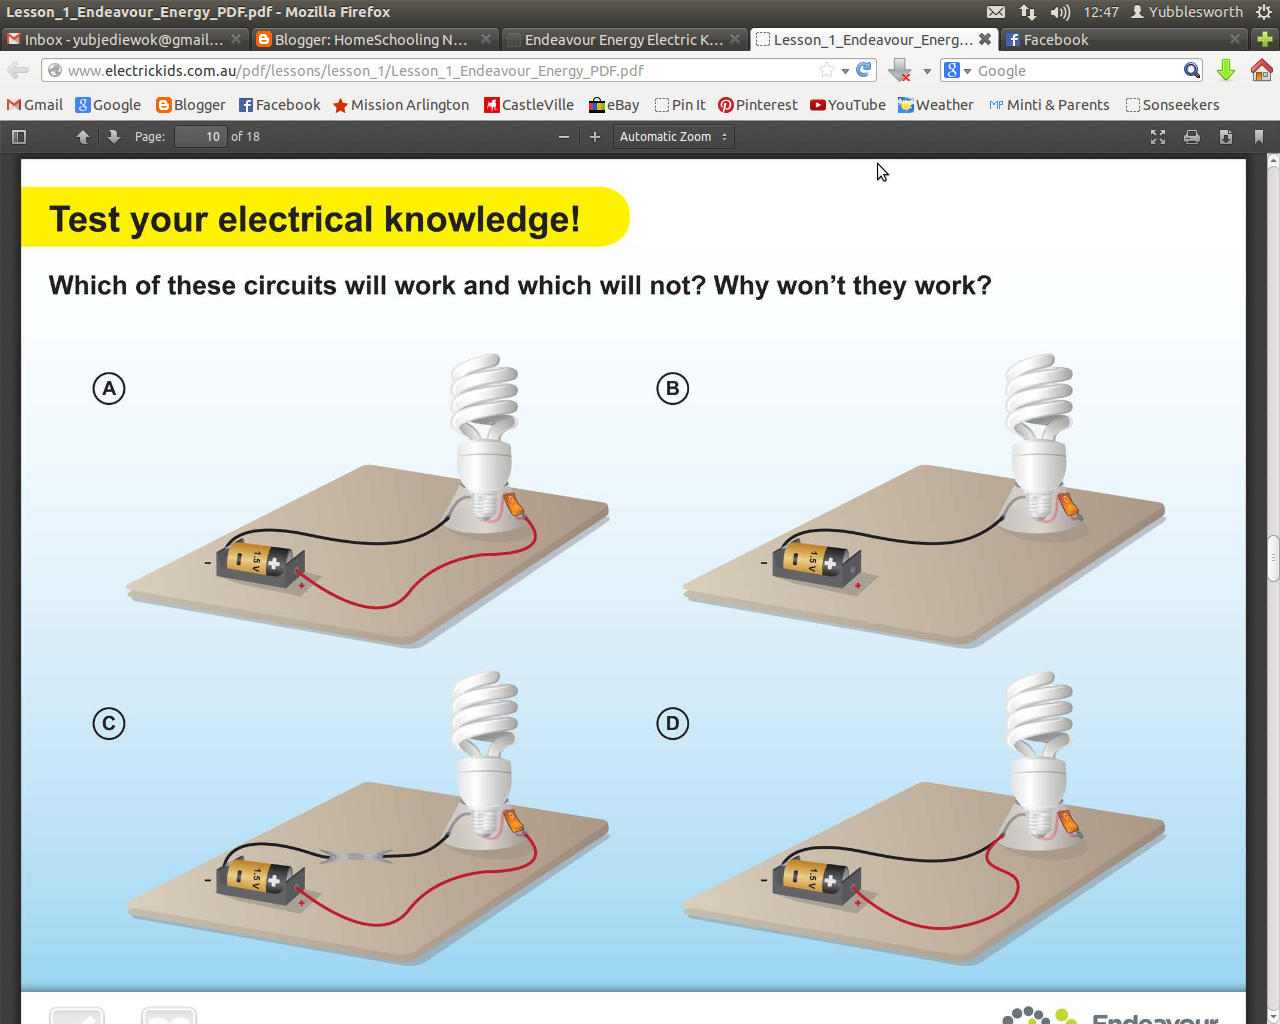 Homeschooling Notepages Electricity Week 1 How Do Circuits Work Turned On It Closes The Gap And Is Able To Move Make Device